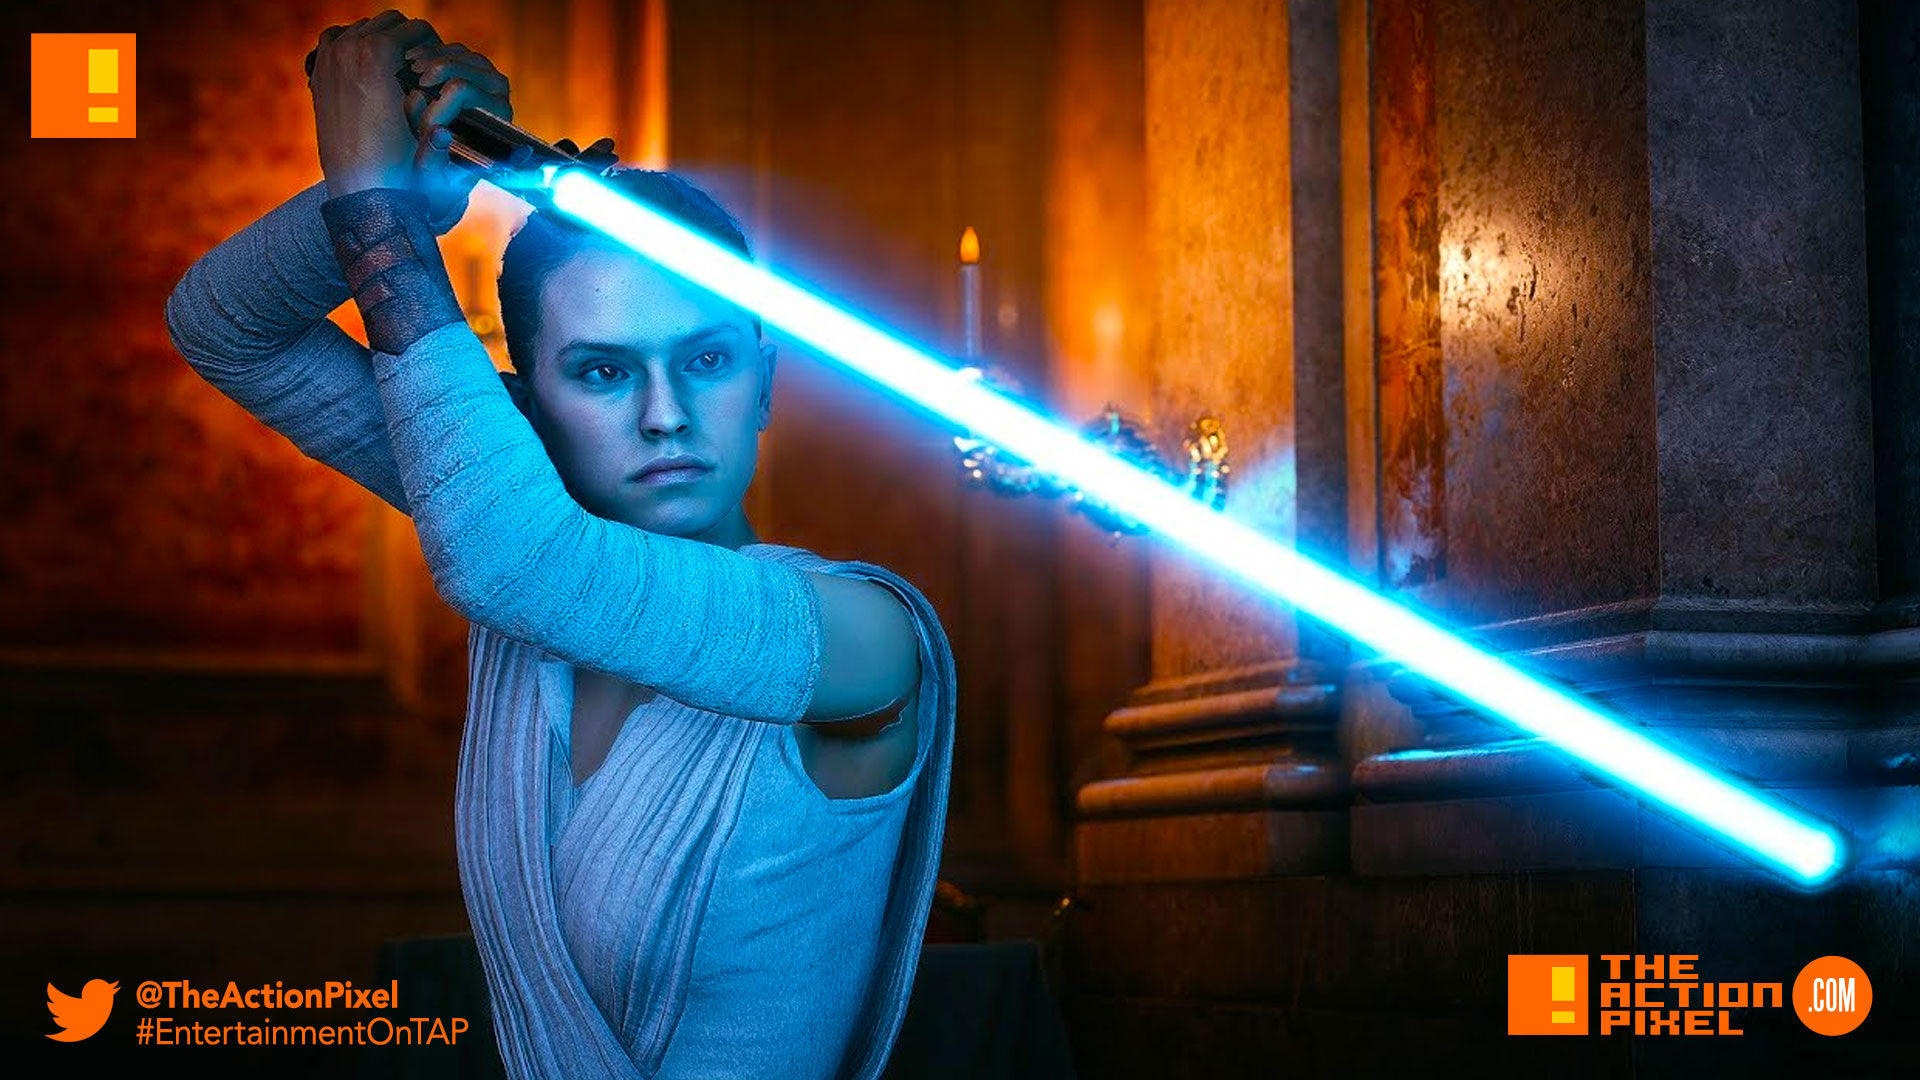 rey, iden versio, commander iden versio, darth vader, star wars, star wars: battlefront ii, star wars battlefront II, BATTLEFRONT II, battlefront 2, kylo ren, trailer, ea, dice games, ea dice, the action pixel, entertainment on tap,beta, trailer,lucasfilm, disney, single player trailer,single campaign trailer